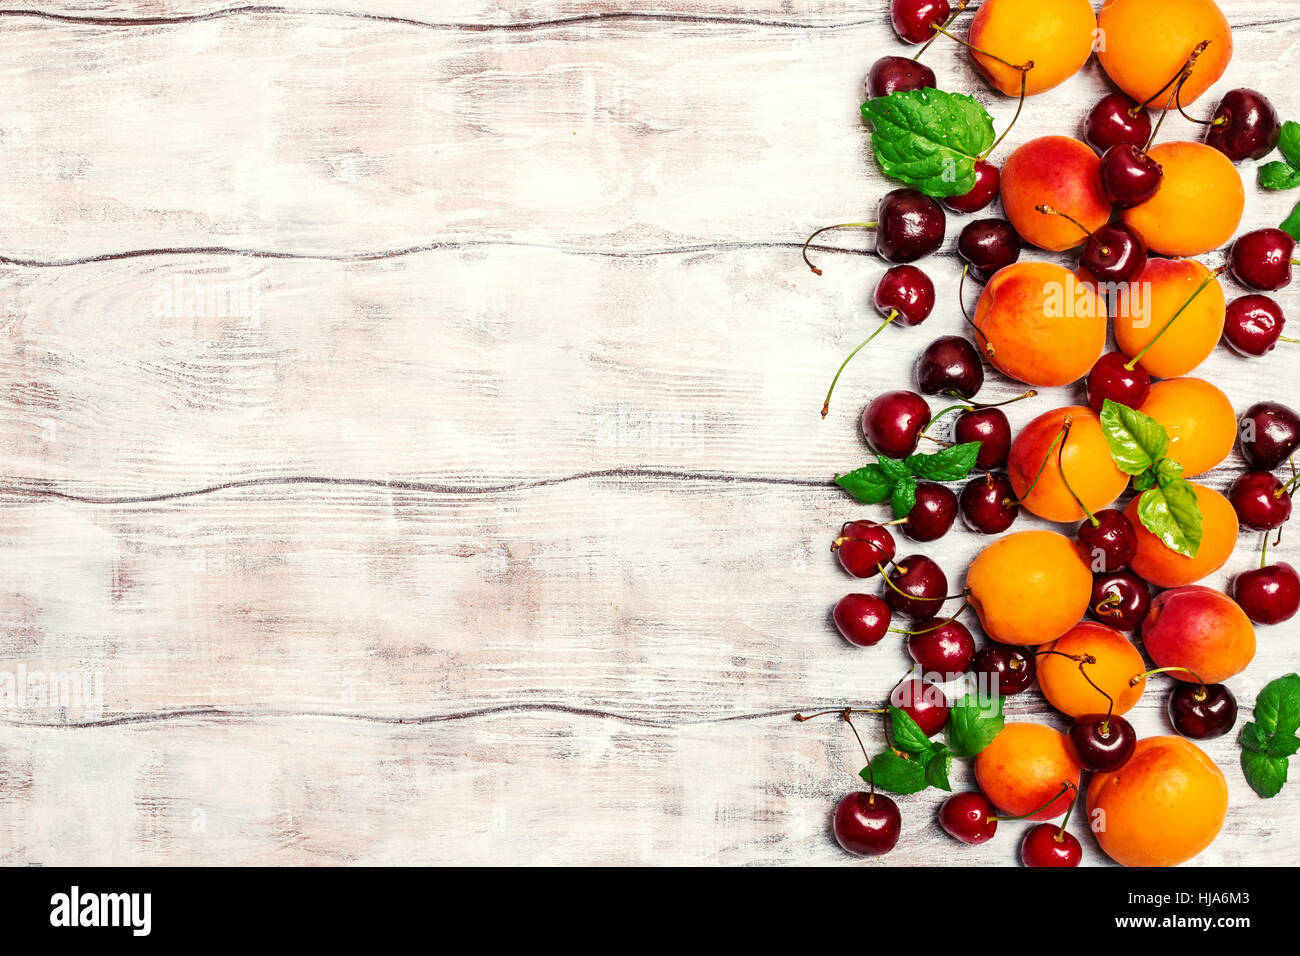 Summer Fruits On White Wooden Table Apricots And Cherries Rustic Background Top View Copy Space